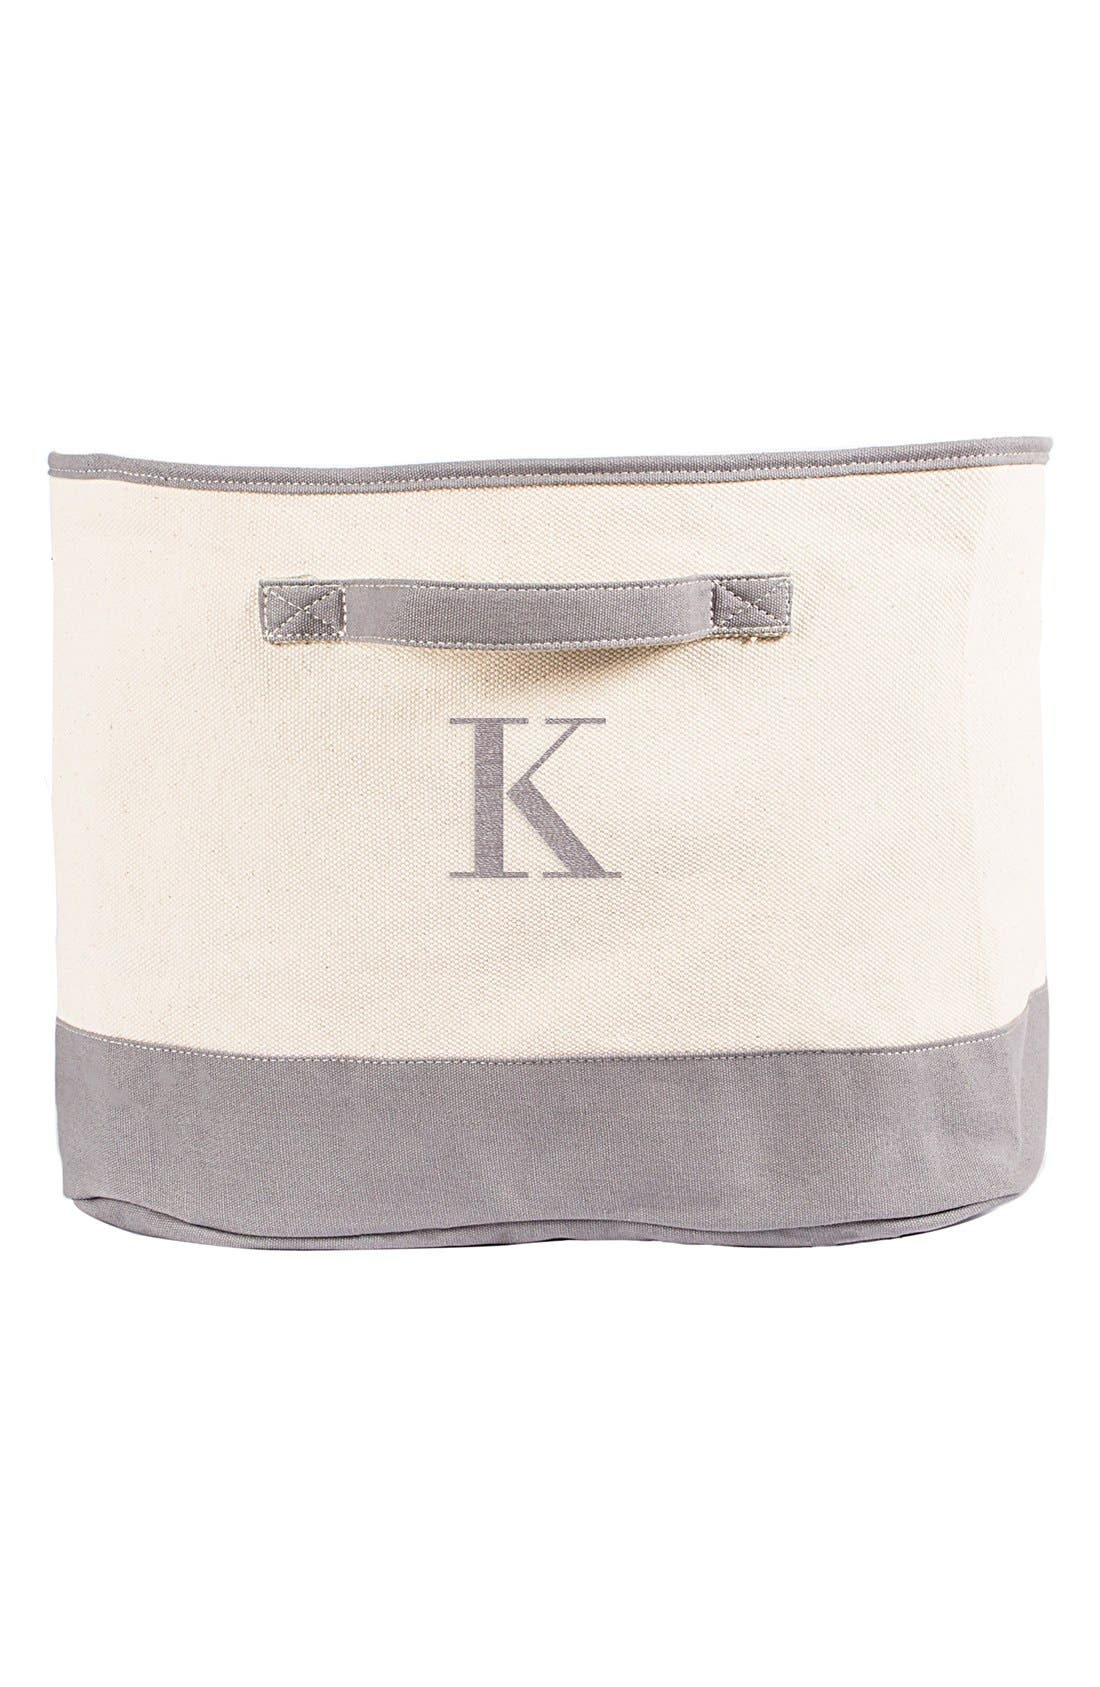 Monogram Square Canvas Bin,                             Alternate thumbnail 4, color,                             035